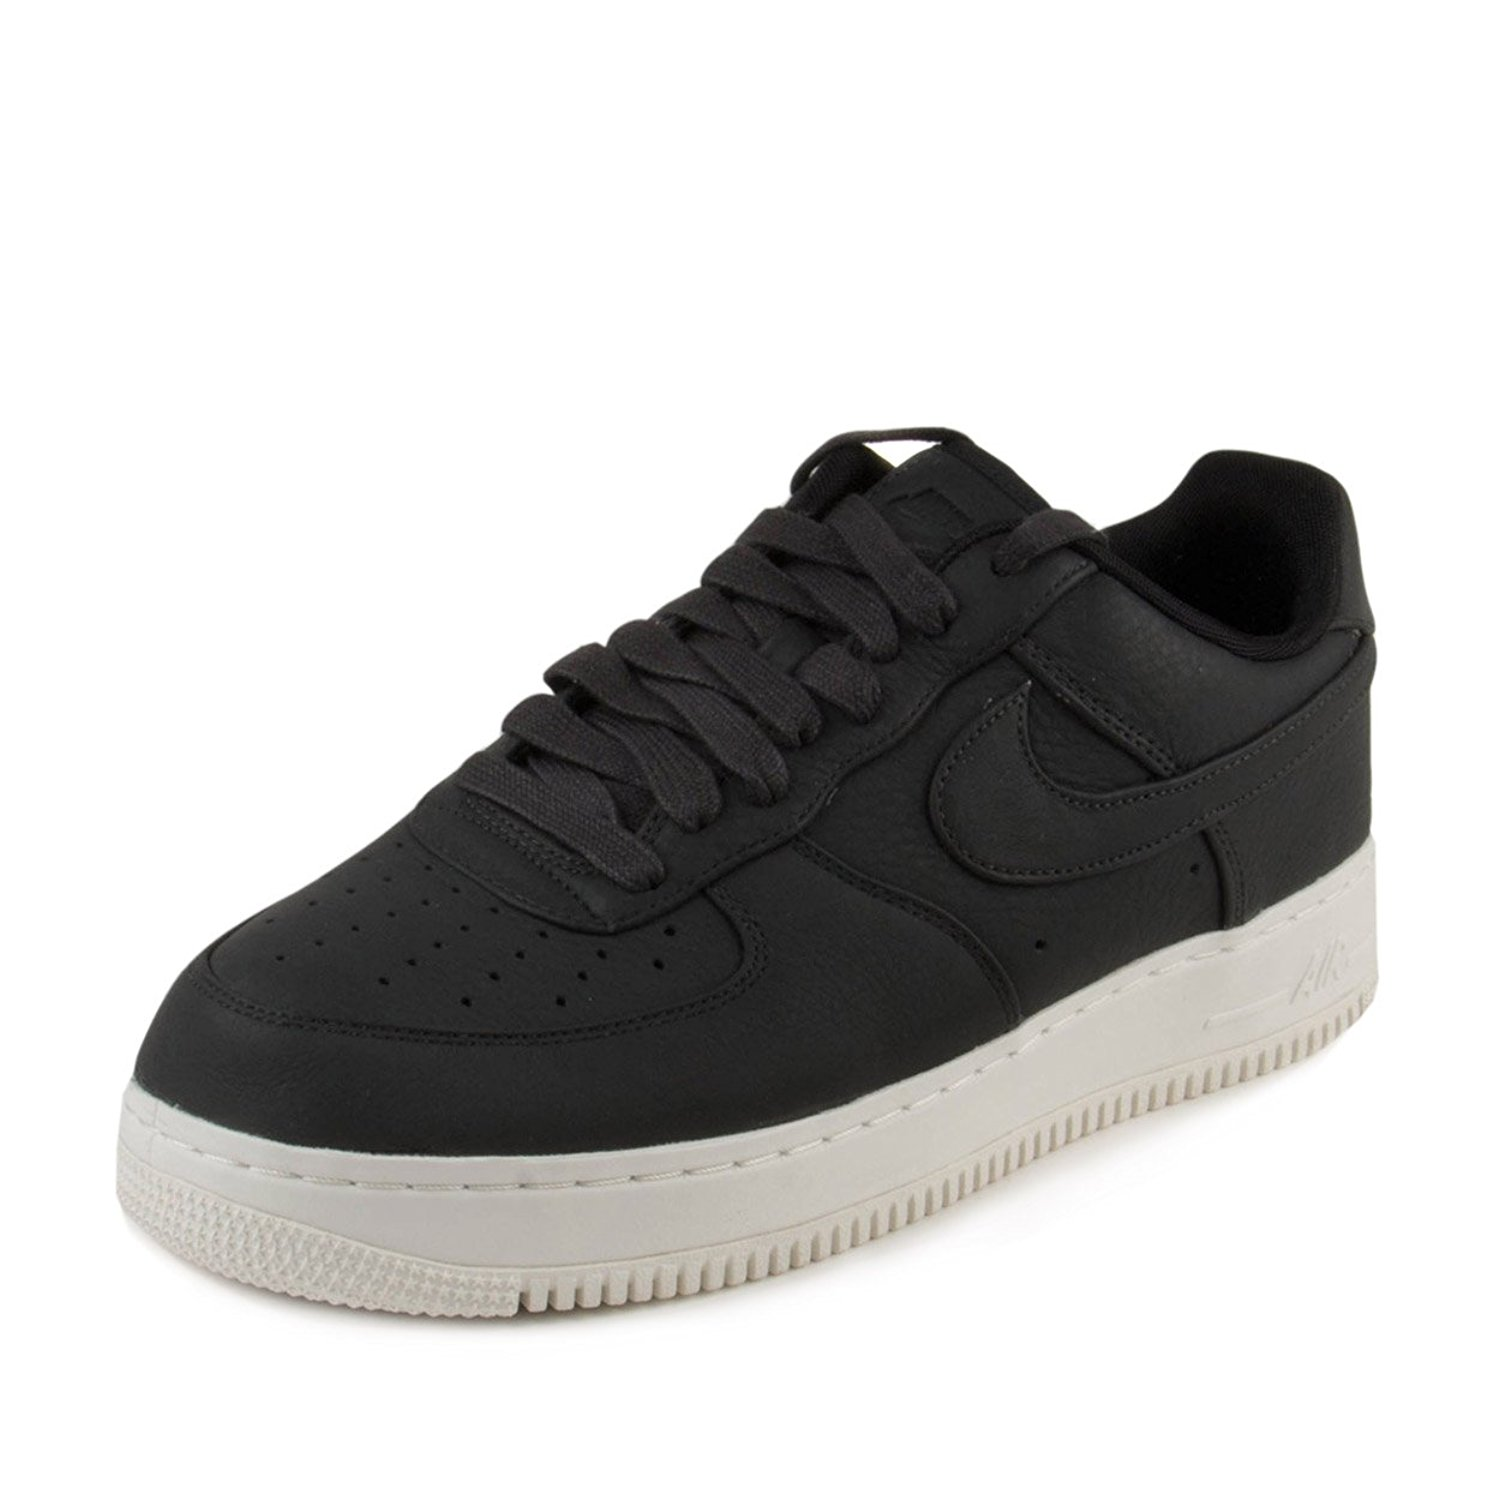 c648ce3d9cd Get Quotations · Nike Mens Lab Air Force 1 Low Black Sail Leather